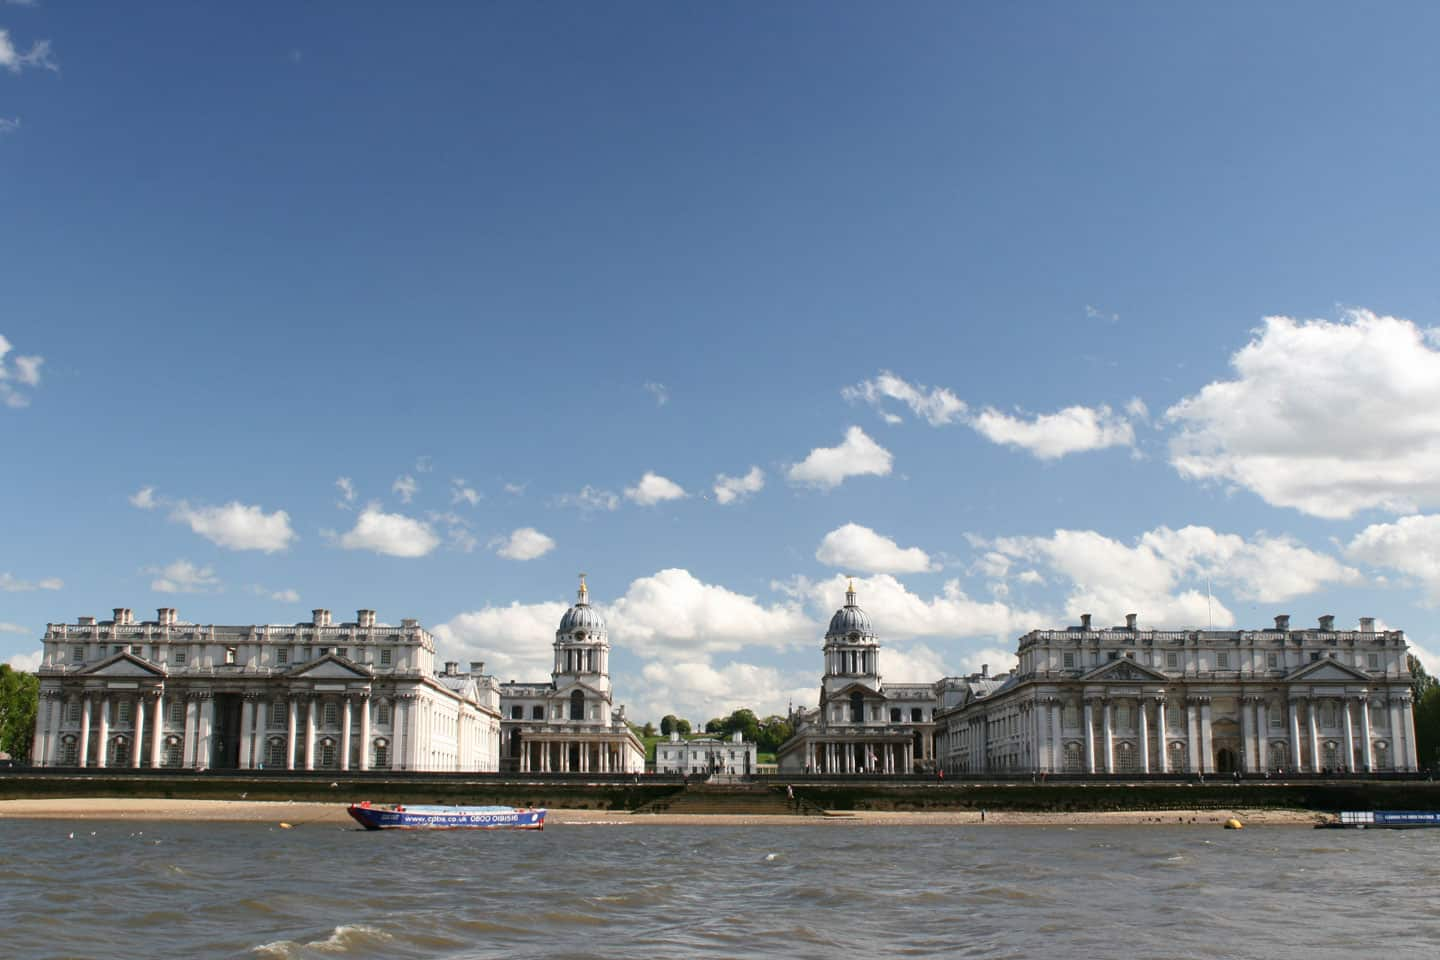 Old Royal Naval College, Royal Borough of Greenwich   Viscount Cruises